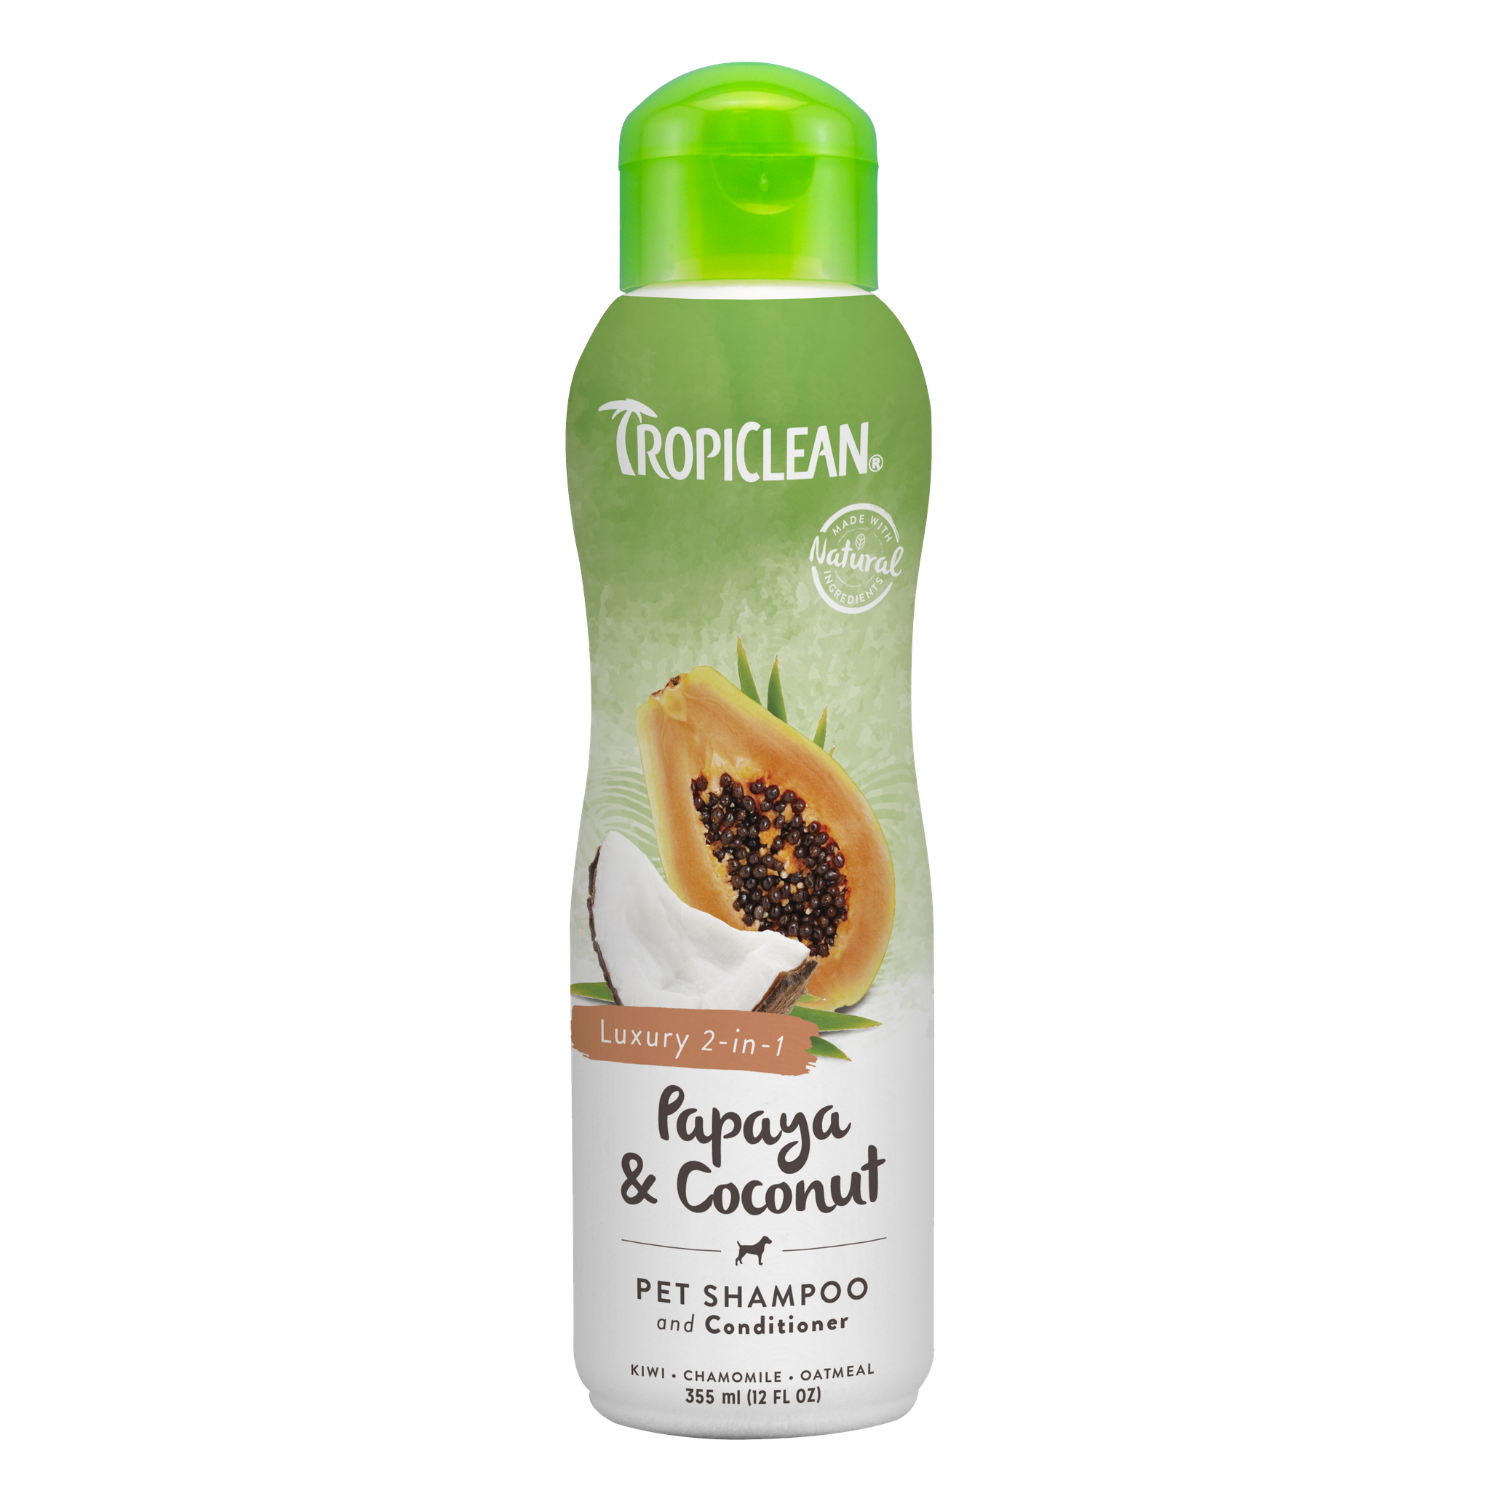 Tropiclean Papaya & Coconut 2-in-1 Shampoo and Conditioner - 355ml / 3.79L